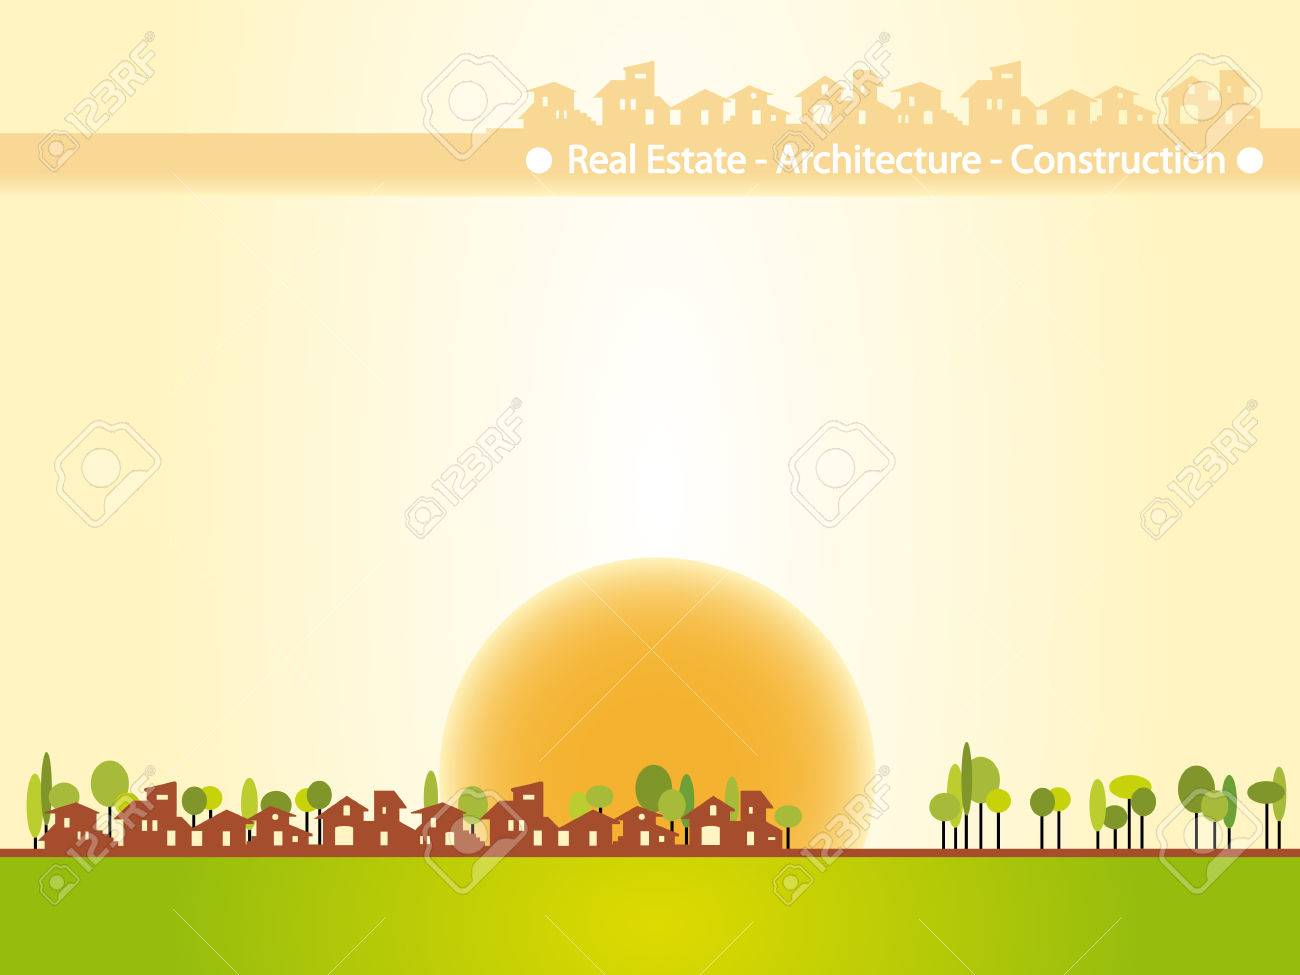 Brochure cover - Real estate, architecture, construction company. Warm tones, houses silhouettes Stock Vector - 4525332